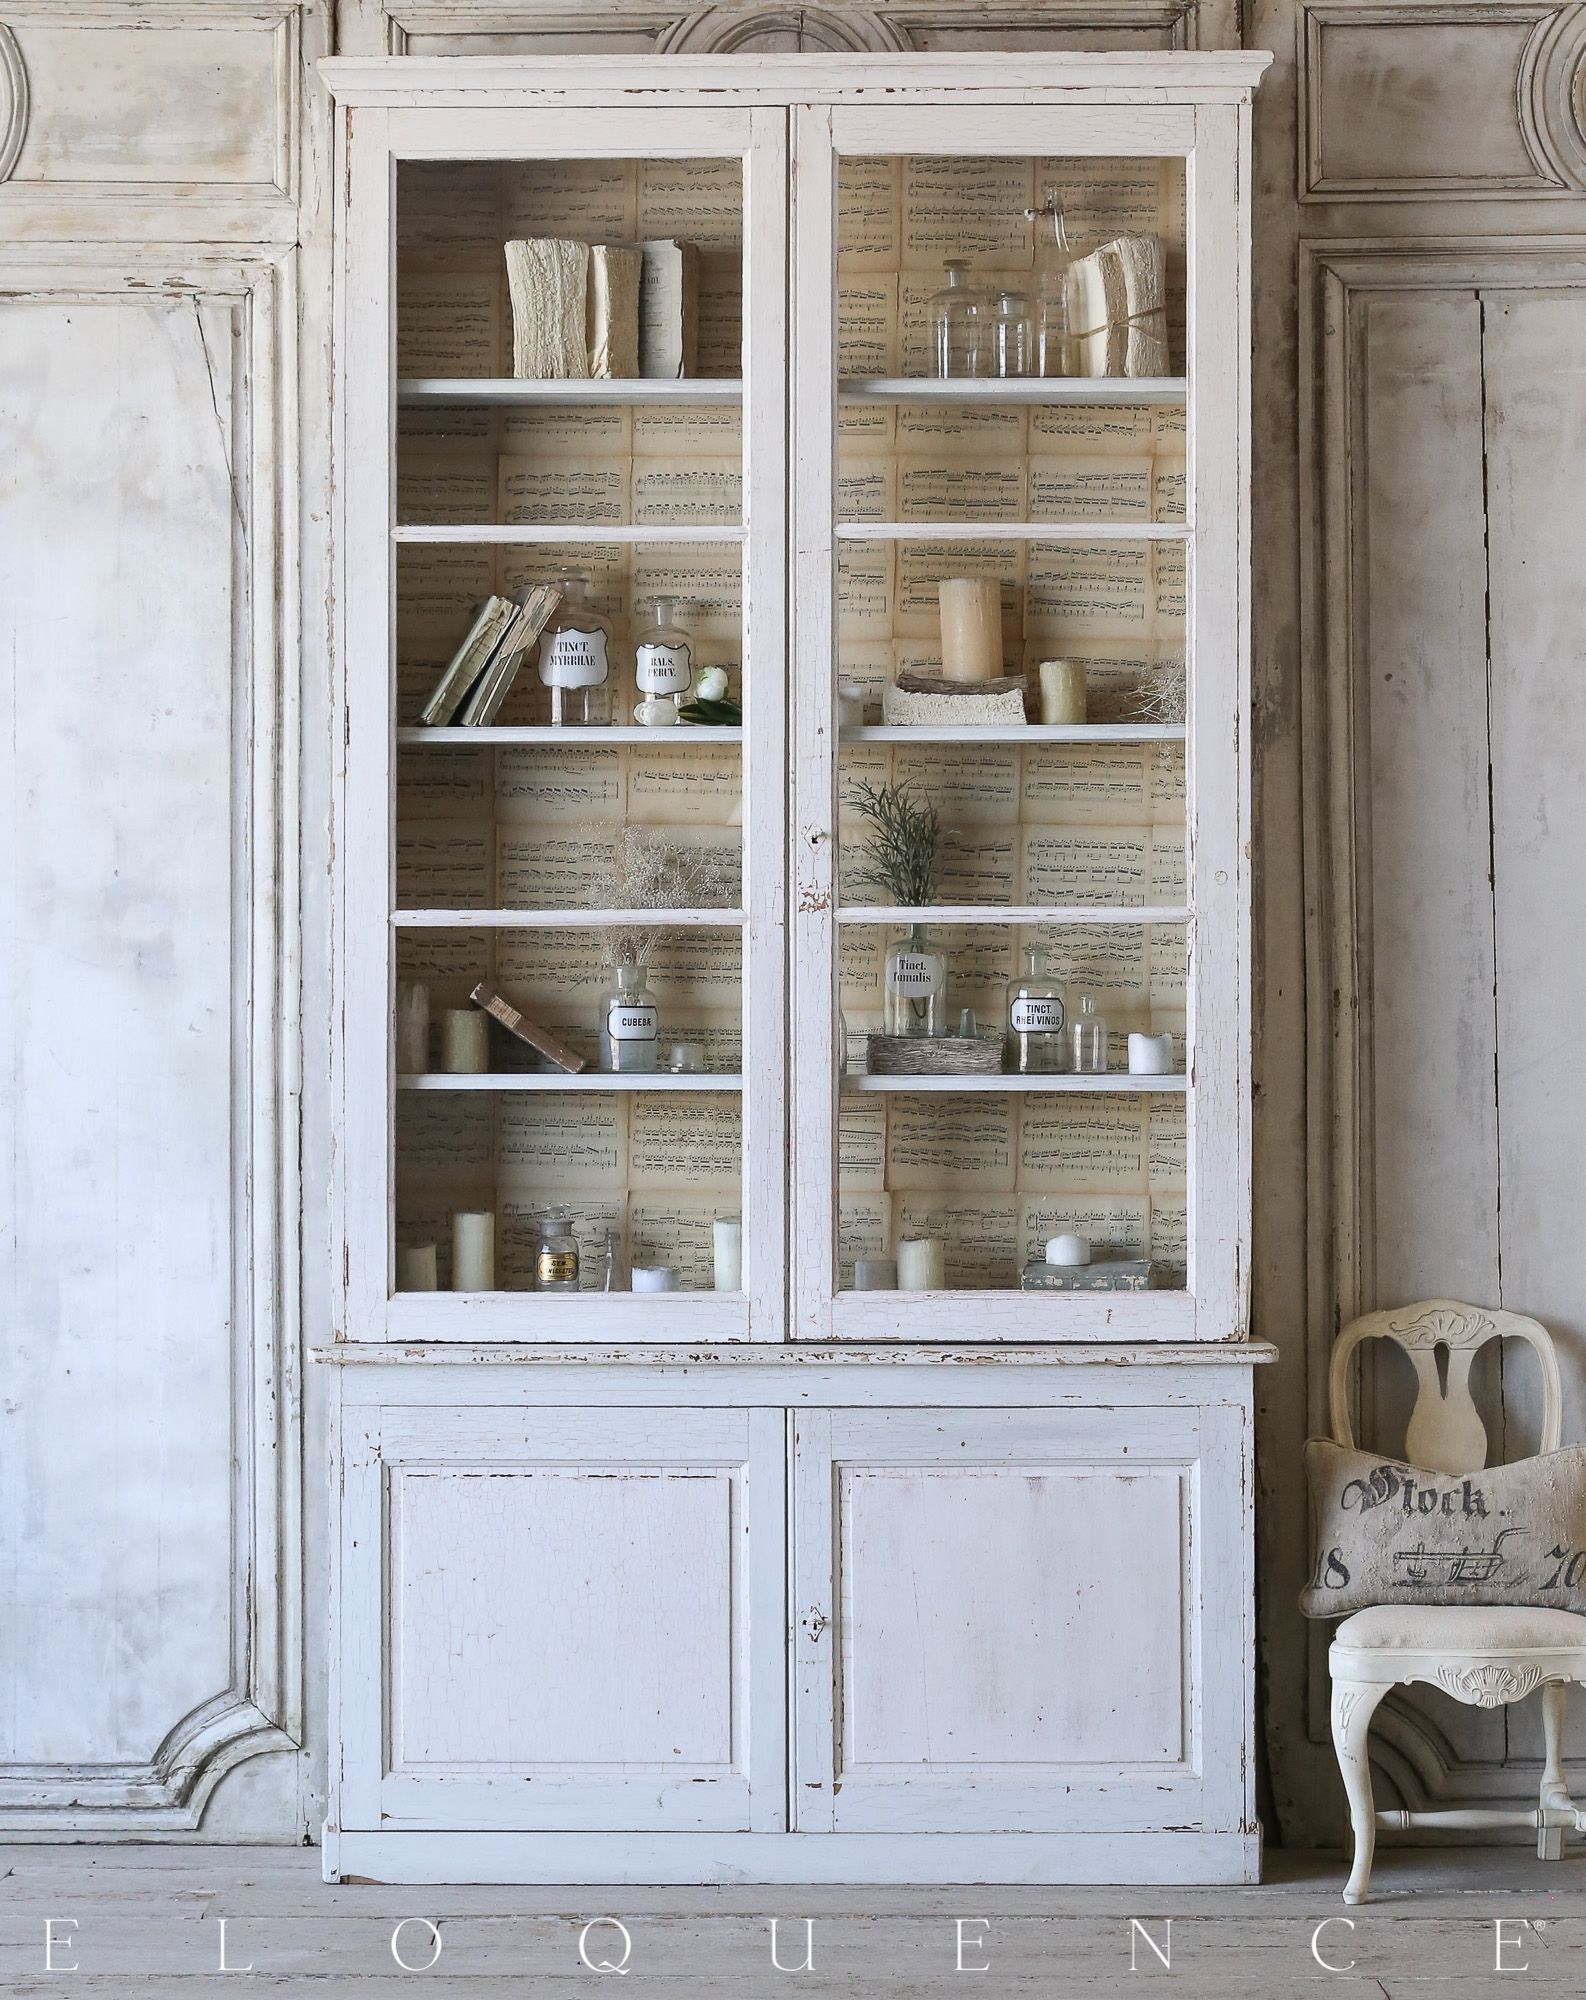 Eloquence Inc Antique French Cabinet 1900 Lovely antique glass